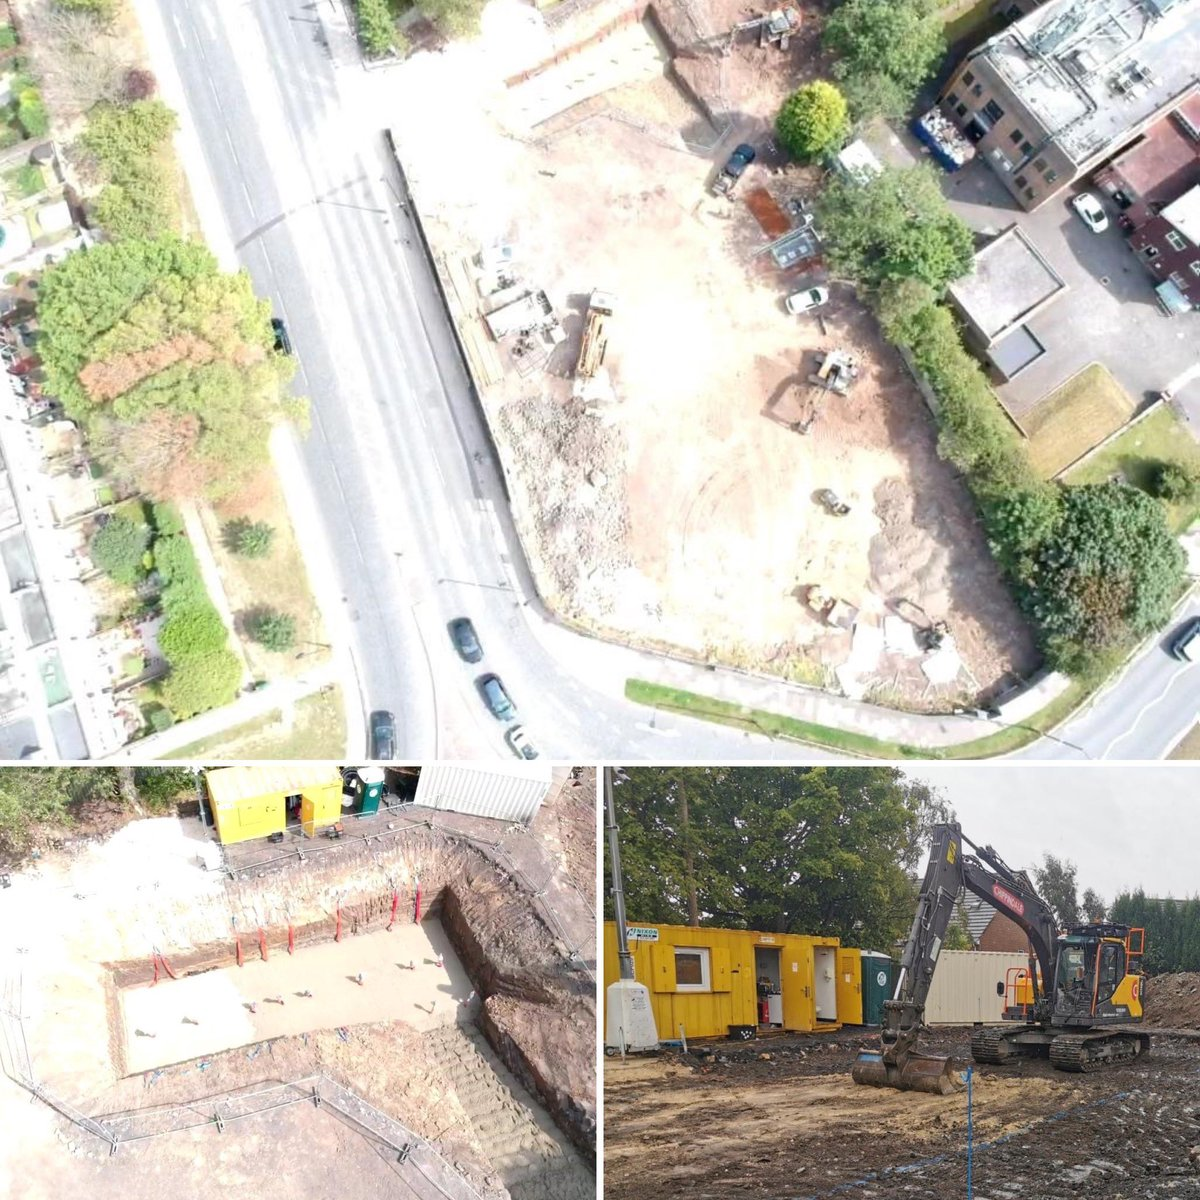 Works now well underway on the site of the former Crofters Lodge PH in #Kenton #Newcastle for a #PFS development - @DynamicTP supported with #TransportAssessment and #HighwayDesign works https://t.co/nFP4tJHANP